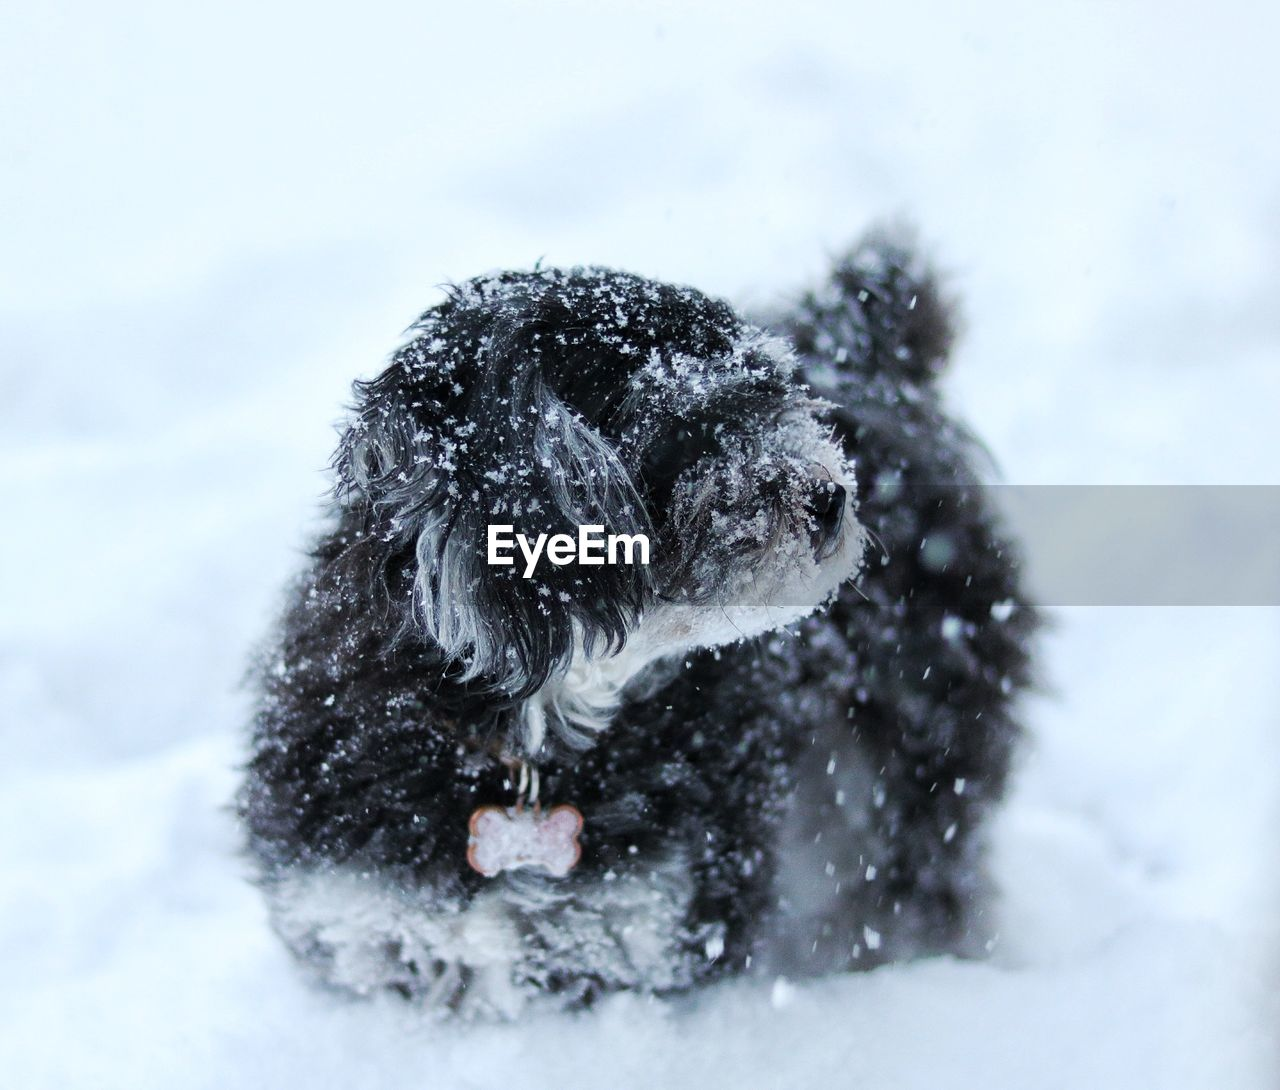 winter, snow, animal themes, cold temperature, animal, one animal, canine, dog, mammal, nature, domestic animals, pets, domestic, vertebrate, day, no people, focus on foreground, field, outdoors, snowing, extreme weather